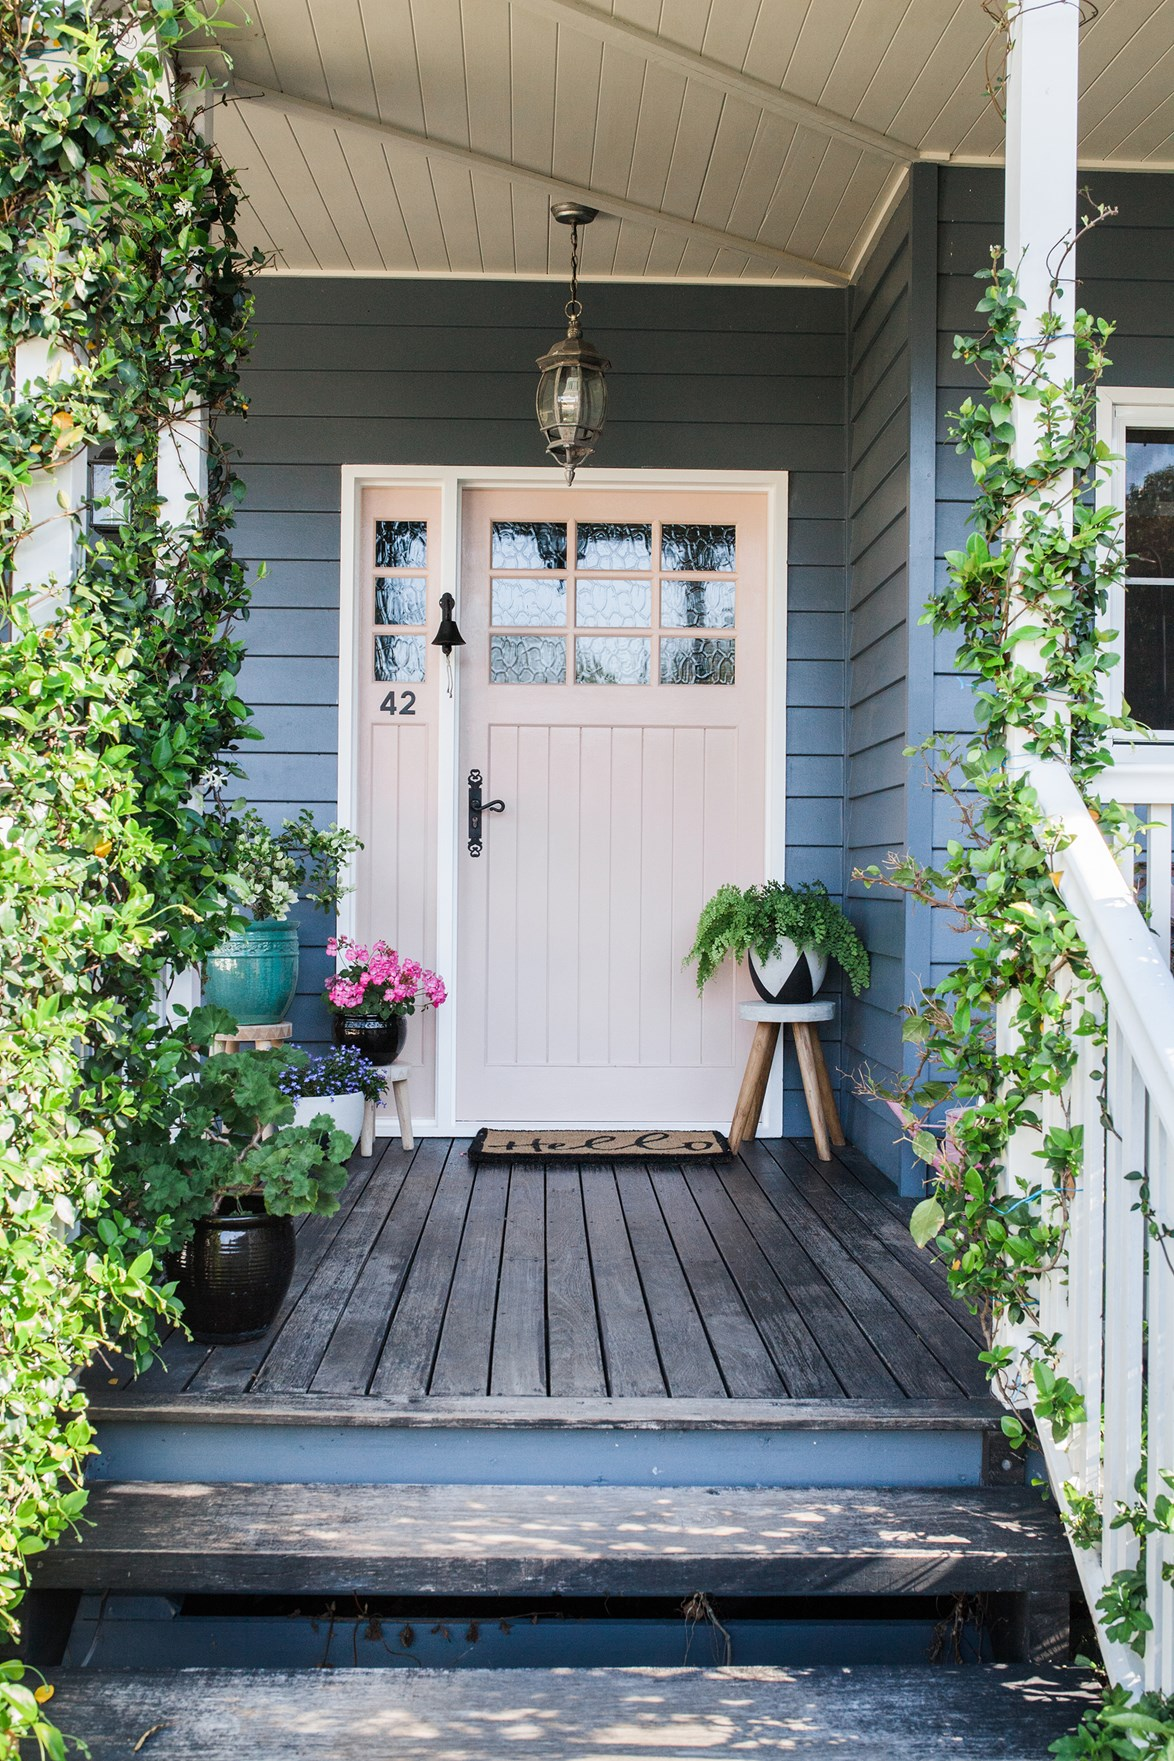 How gorgeous is the pale pink door against the grey exterior? It wins our prettiest door prize! A Moroccan style pendant, potted plants and climbing vines just add to the charm.